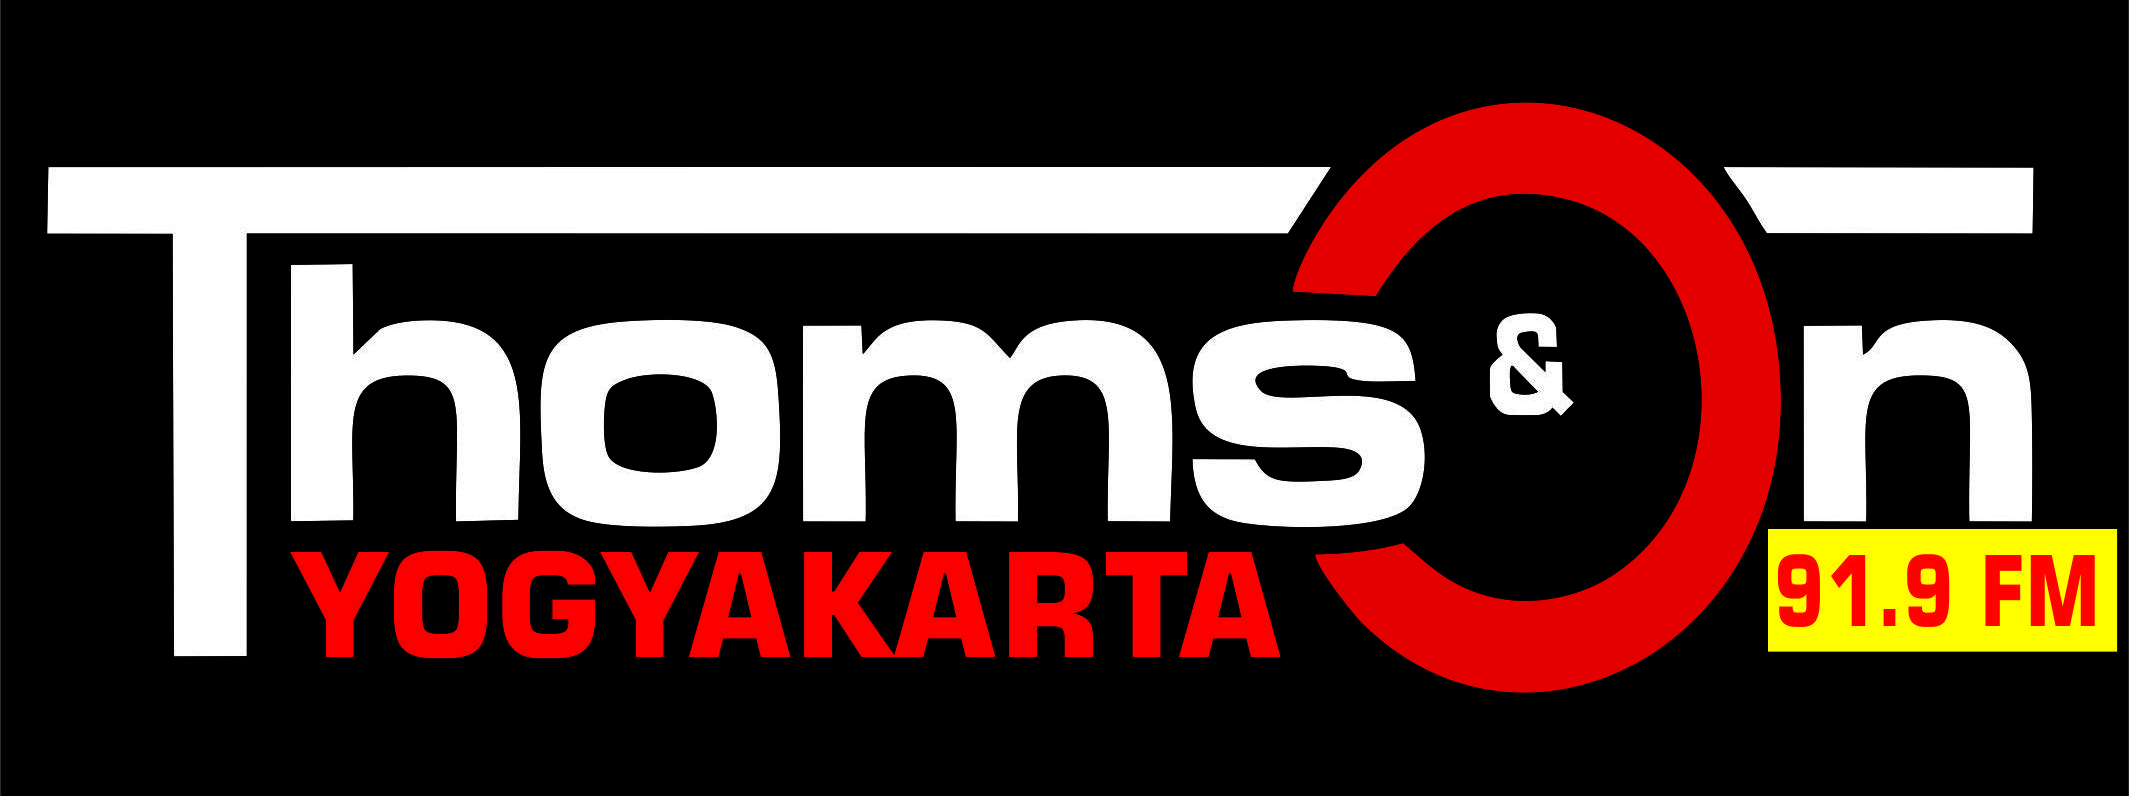 Radio Thomson Jogja